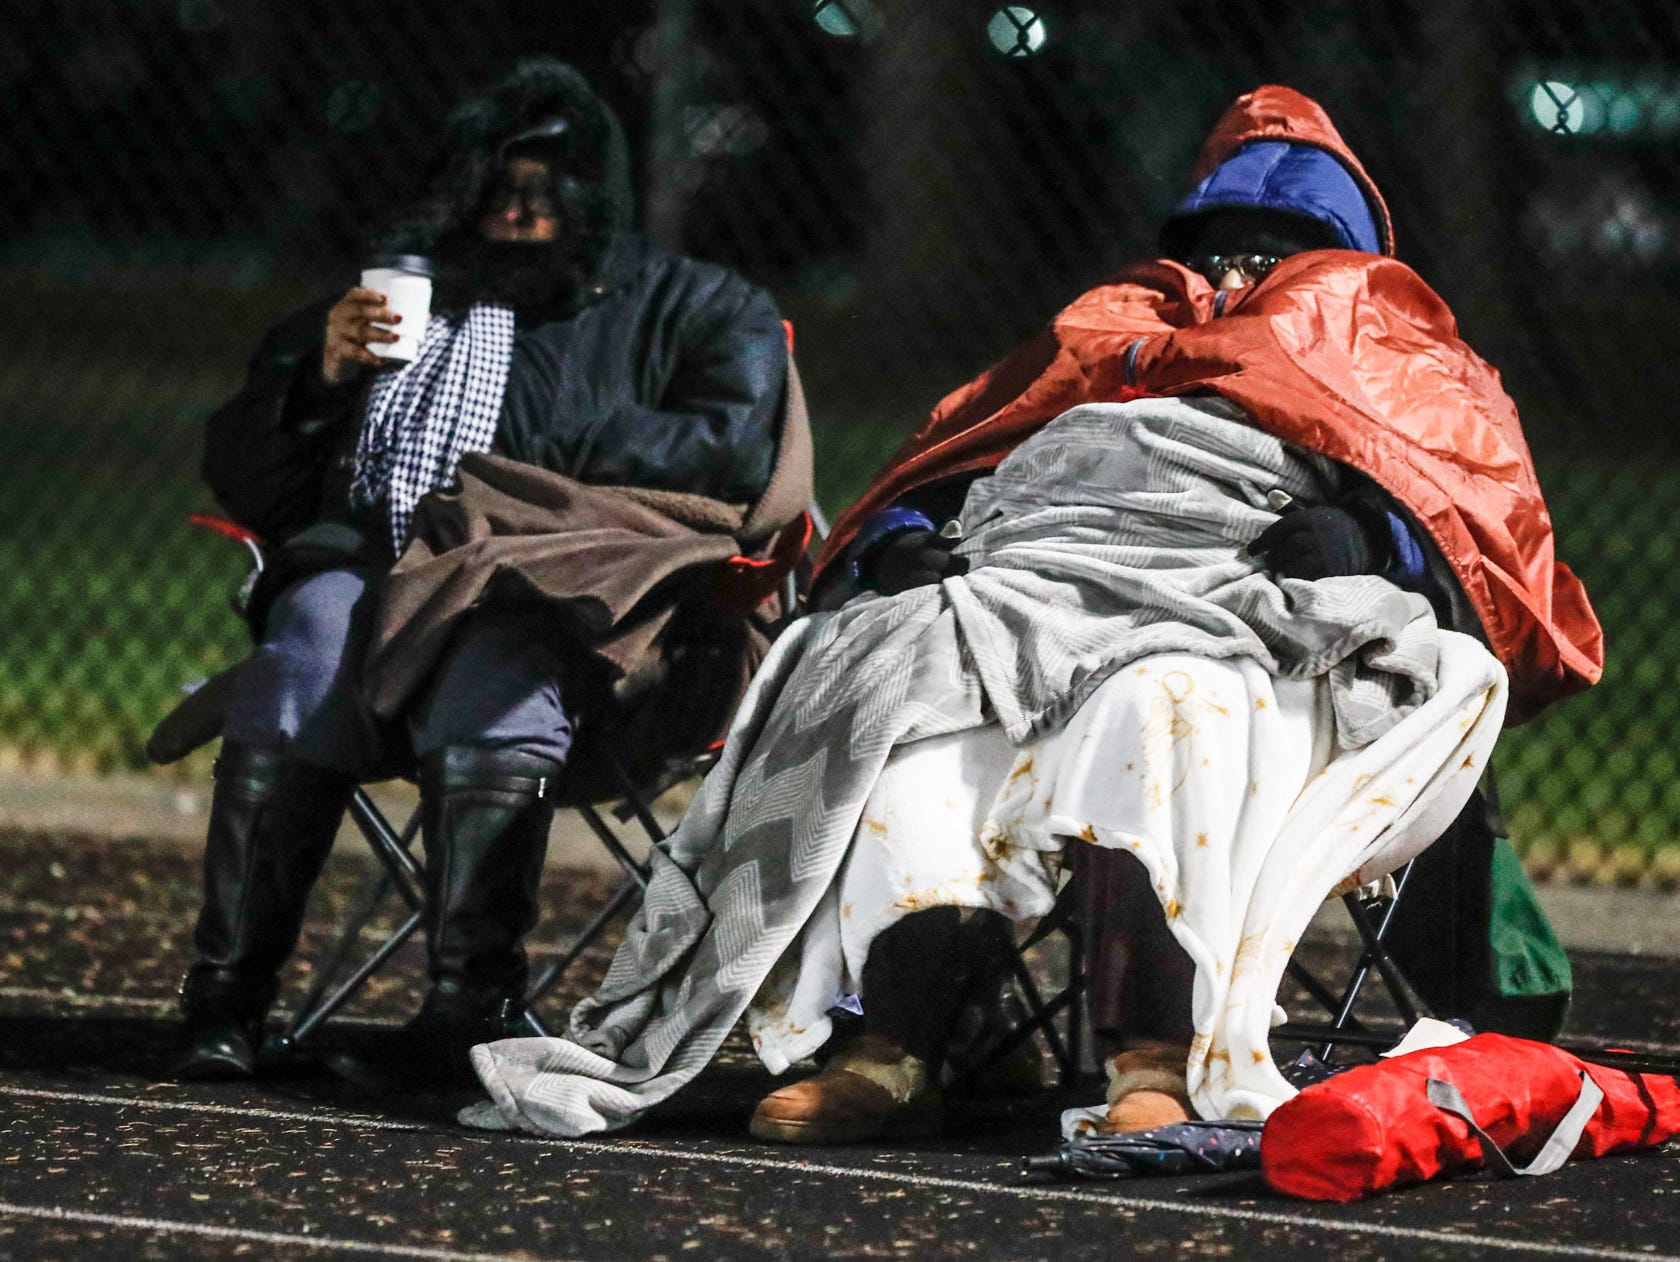 Fans bundle up to keep warm during a regional finals game between the North Central High School Panthers and the Warren Central High School Warriors at North Central High School on Friday, Nov. 9, 2018.